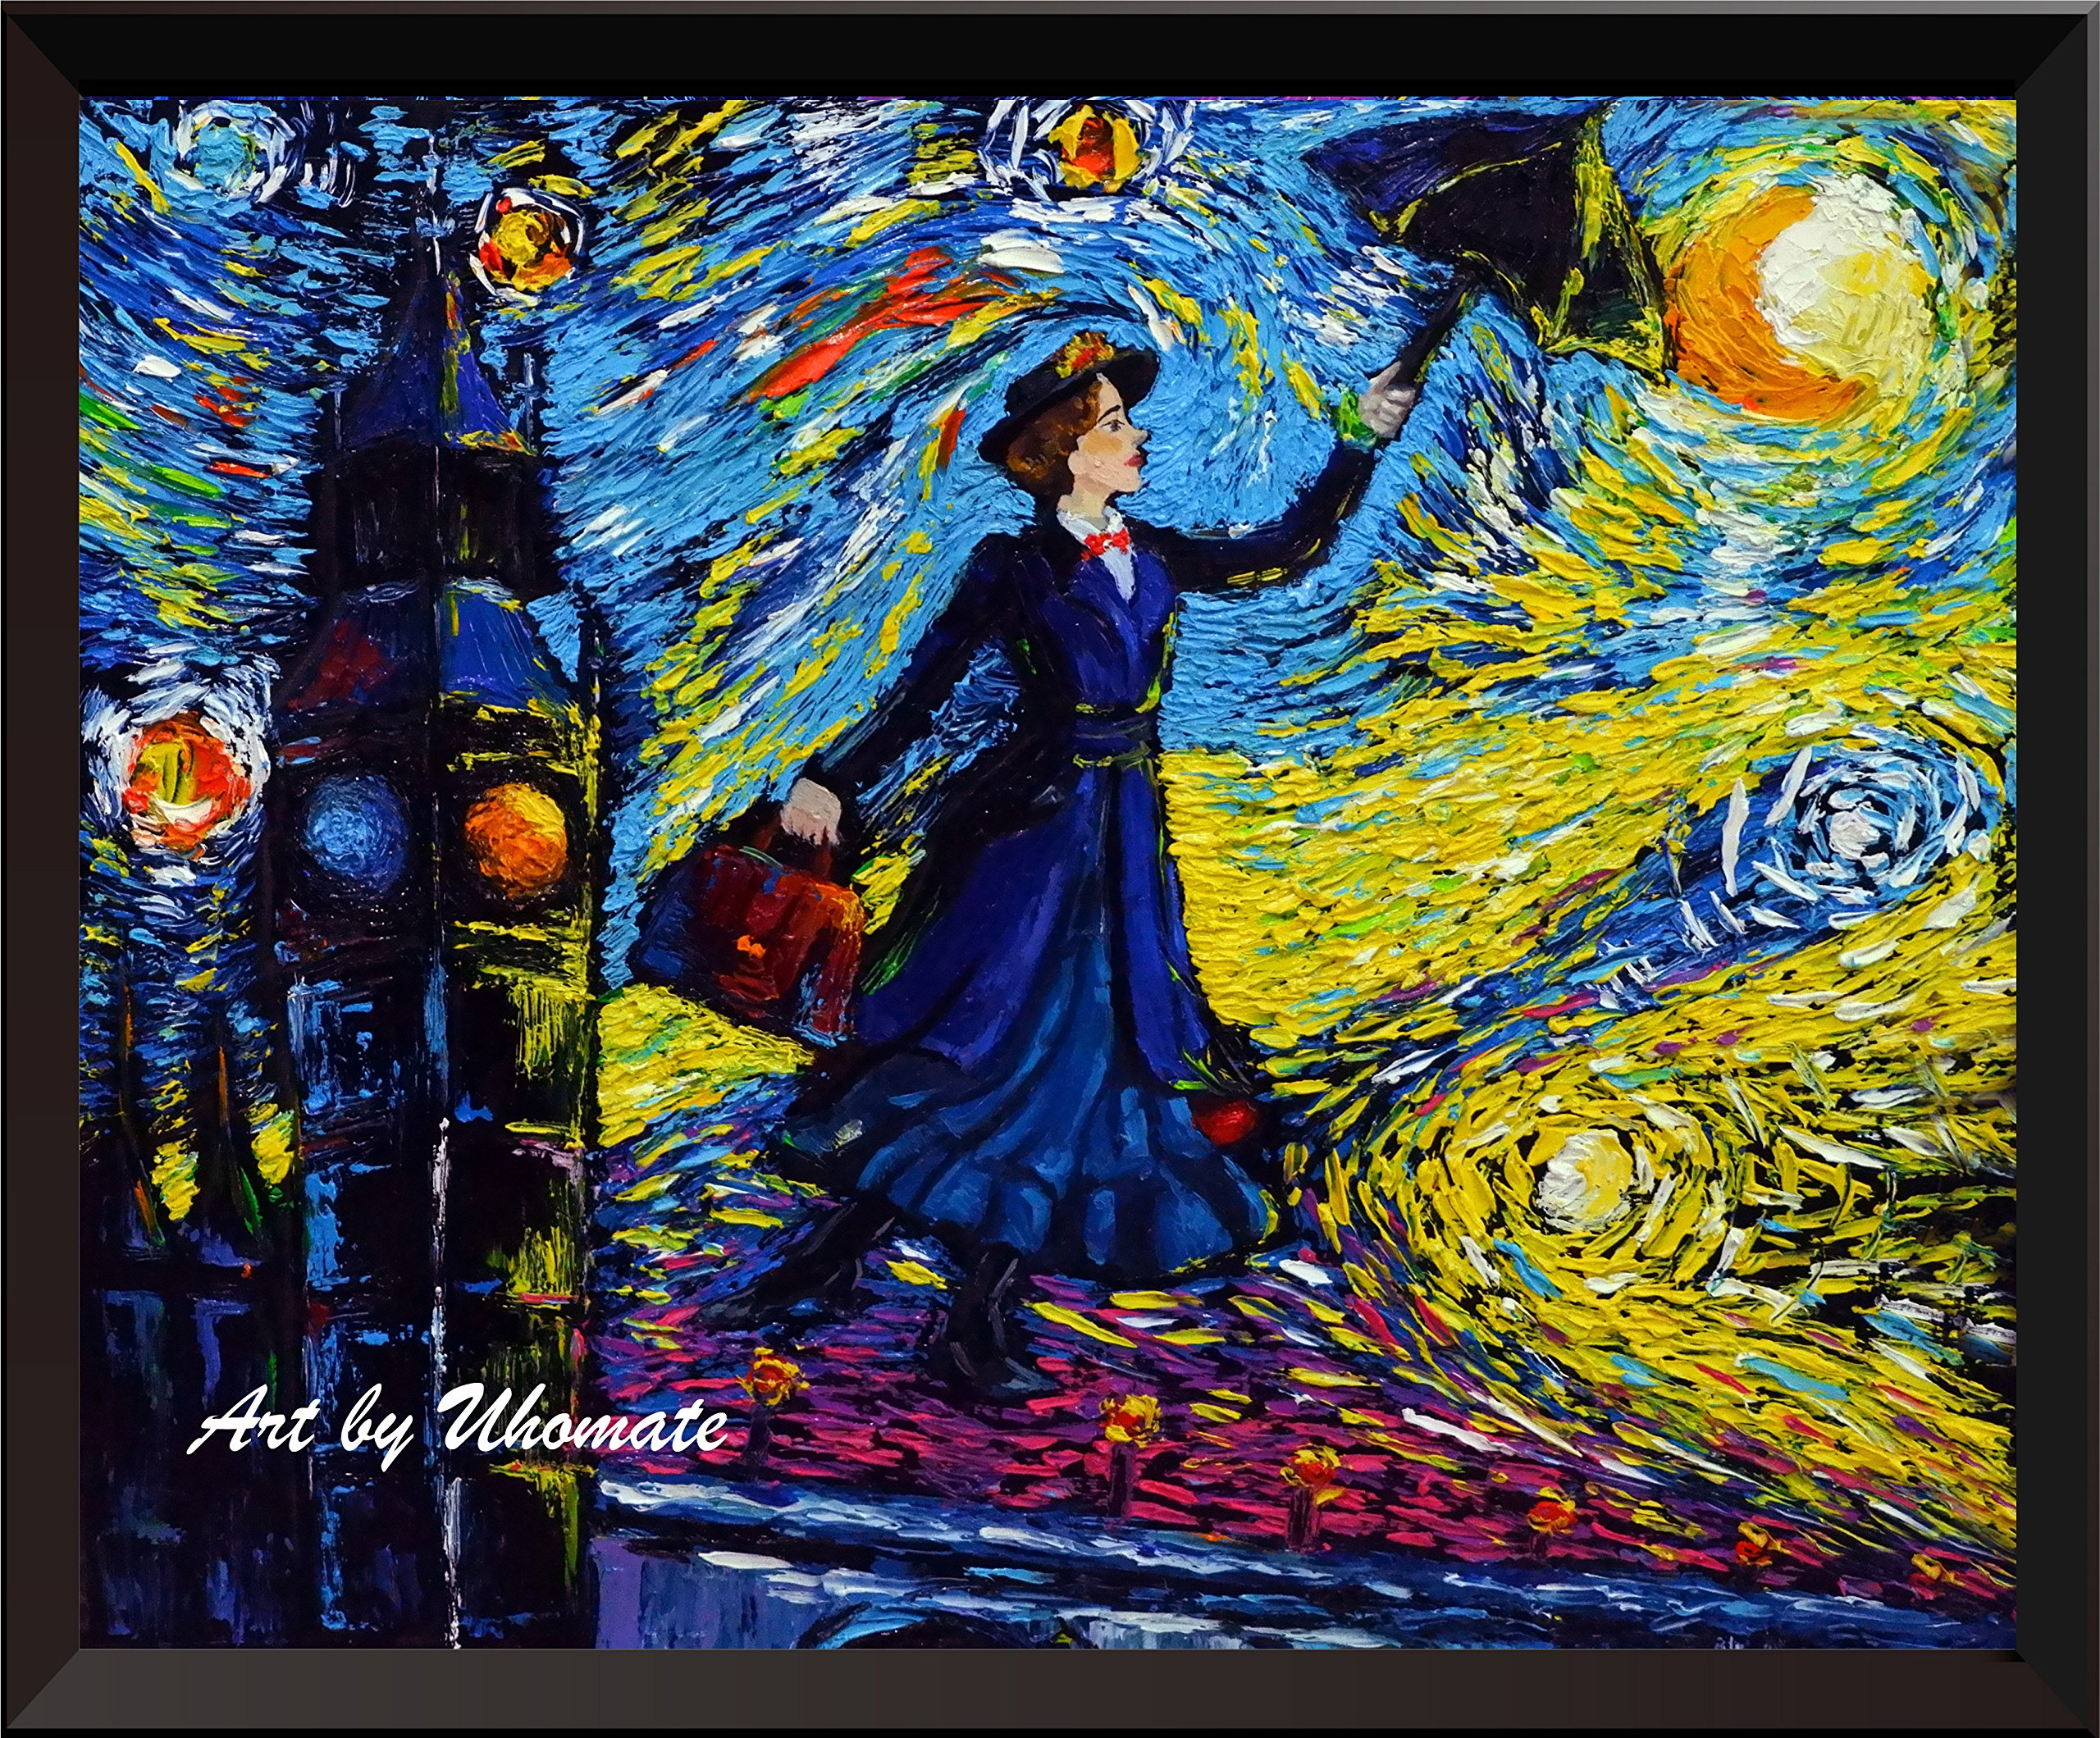 Uhomate Mary Poppins Vincent Van Gogh Starry Night Posters Home Canvas Wall Art Anniversary Gifts Baby Gift Nursery Decor Living Room Wall Decor A066 (8X10)